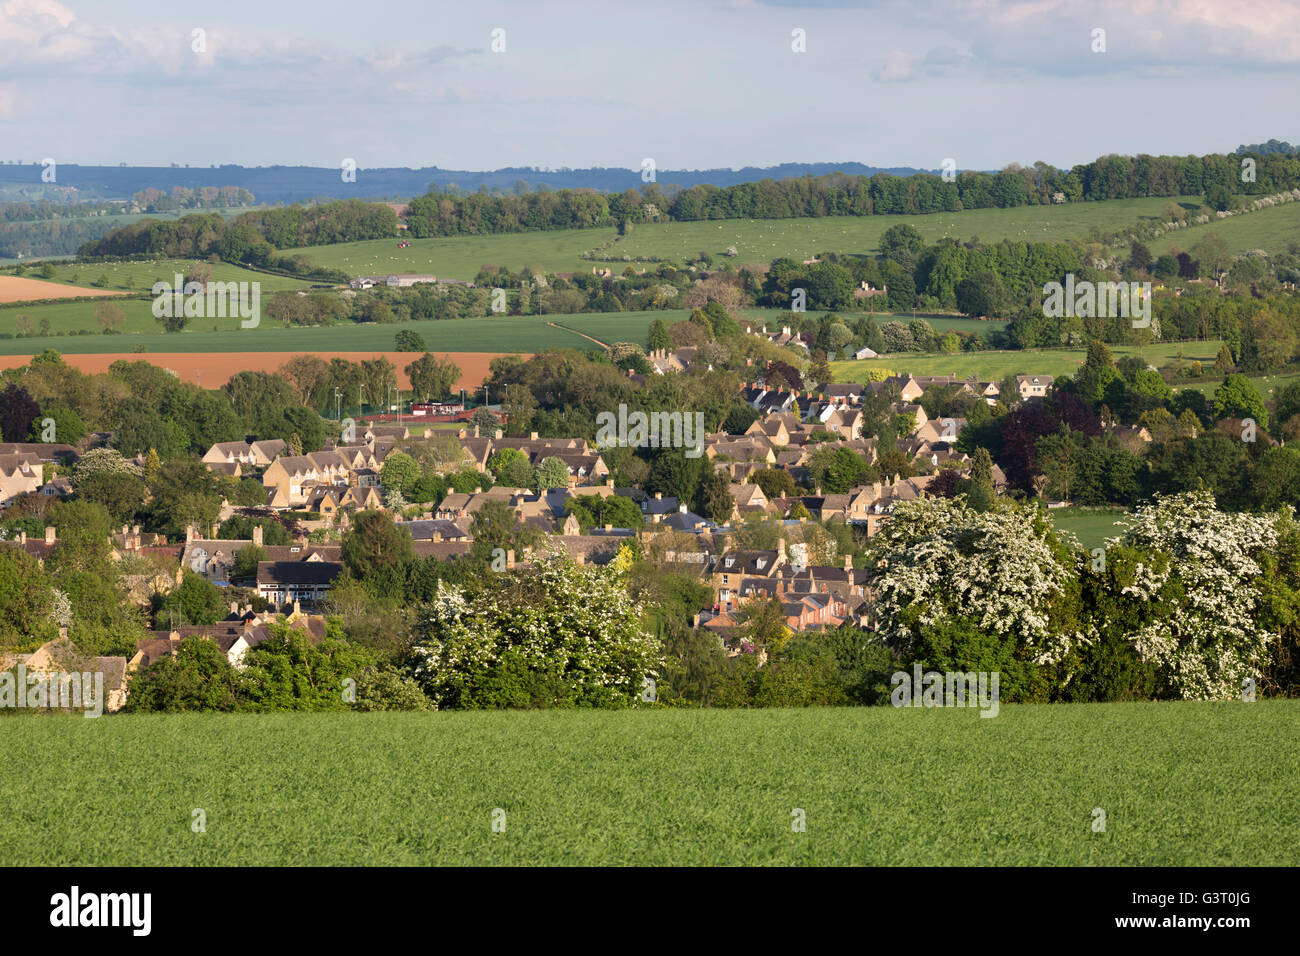 View over Cotswold town and landscape, Chipping Campden, Cotswolds, Gloucestershire, England, United Kingdom, Europe - Stock Image